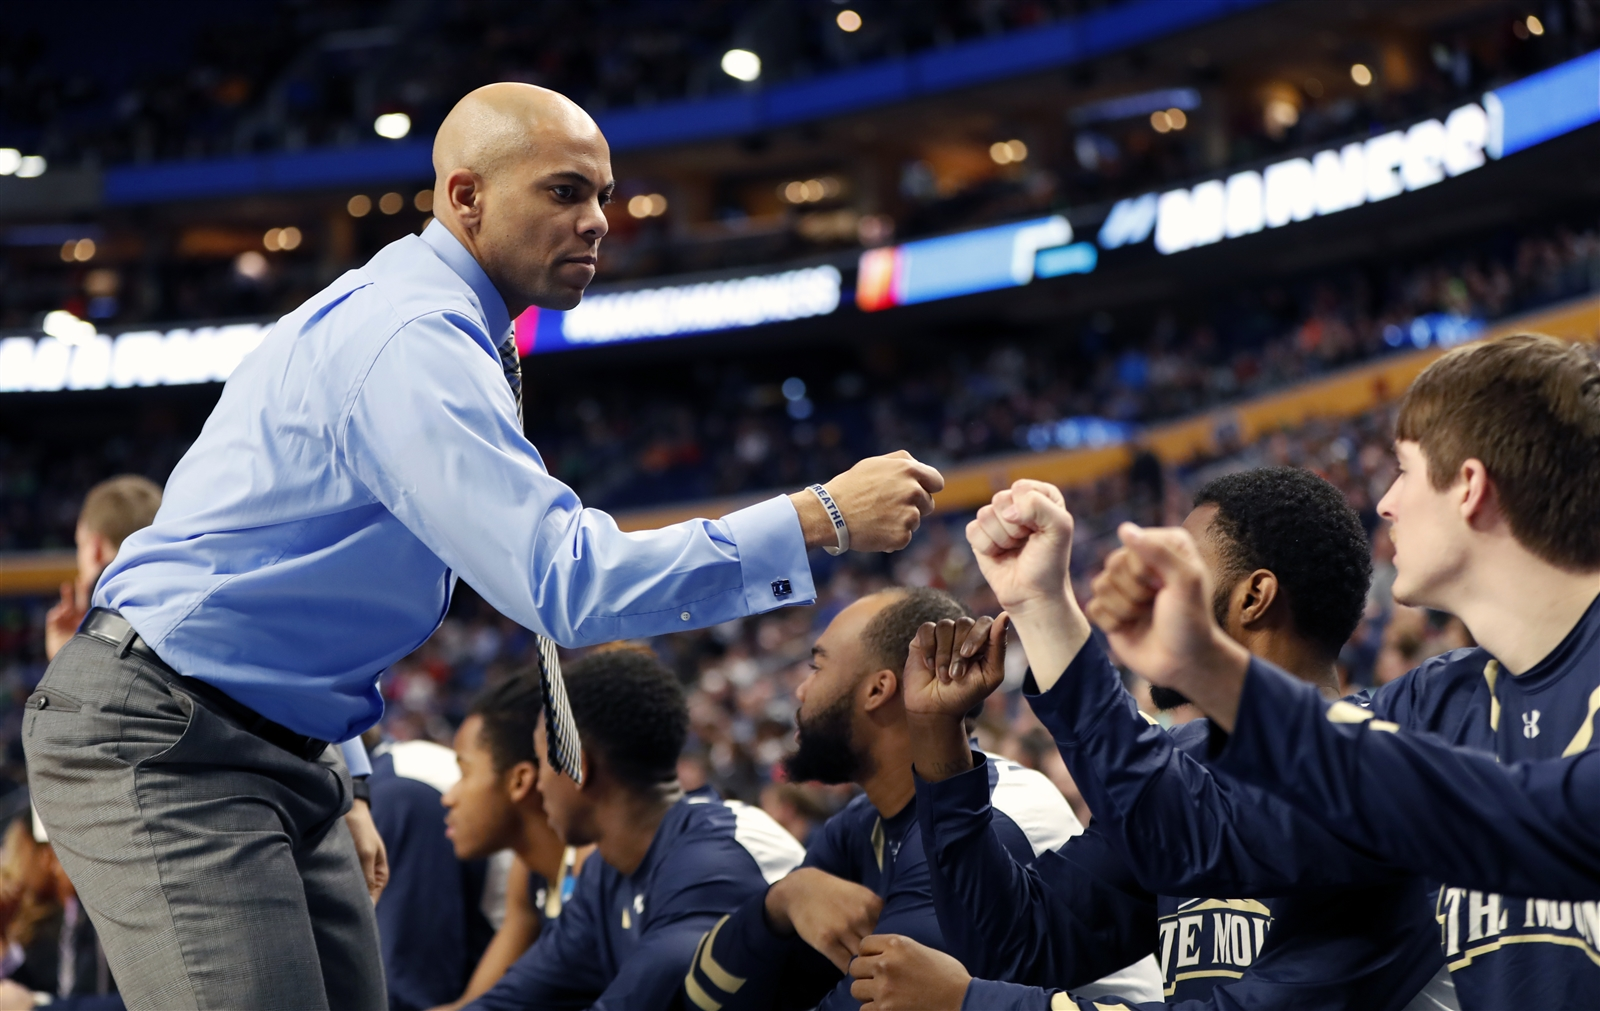 Mount St. Mary's coach Jamion Christian fist bumps his players after their first basket against Villanova.